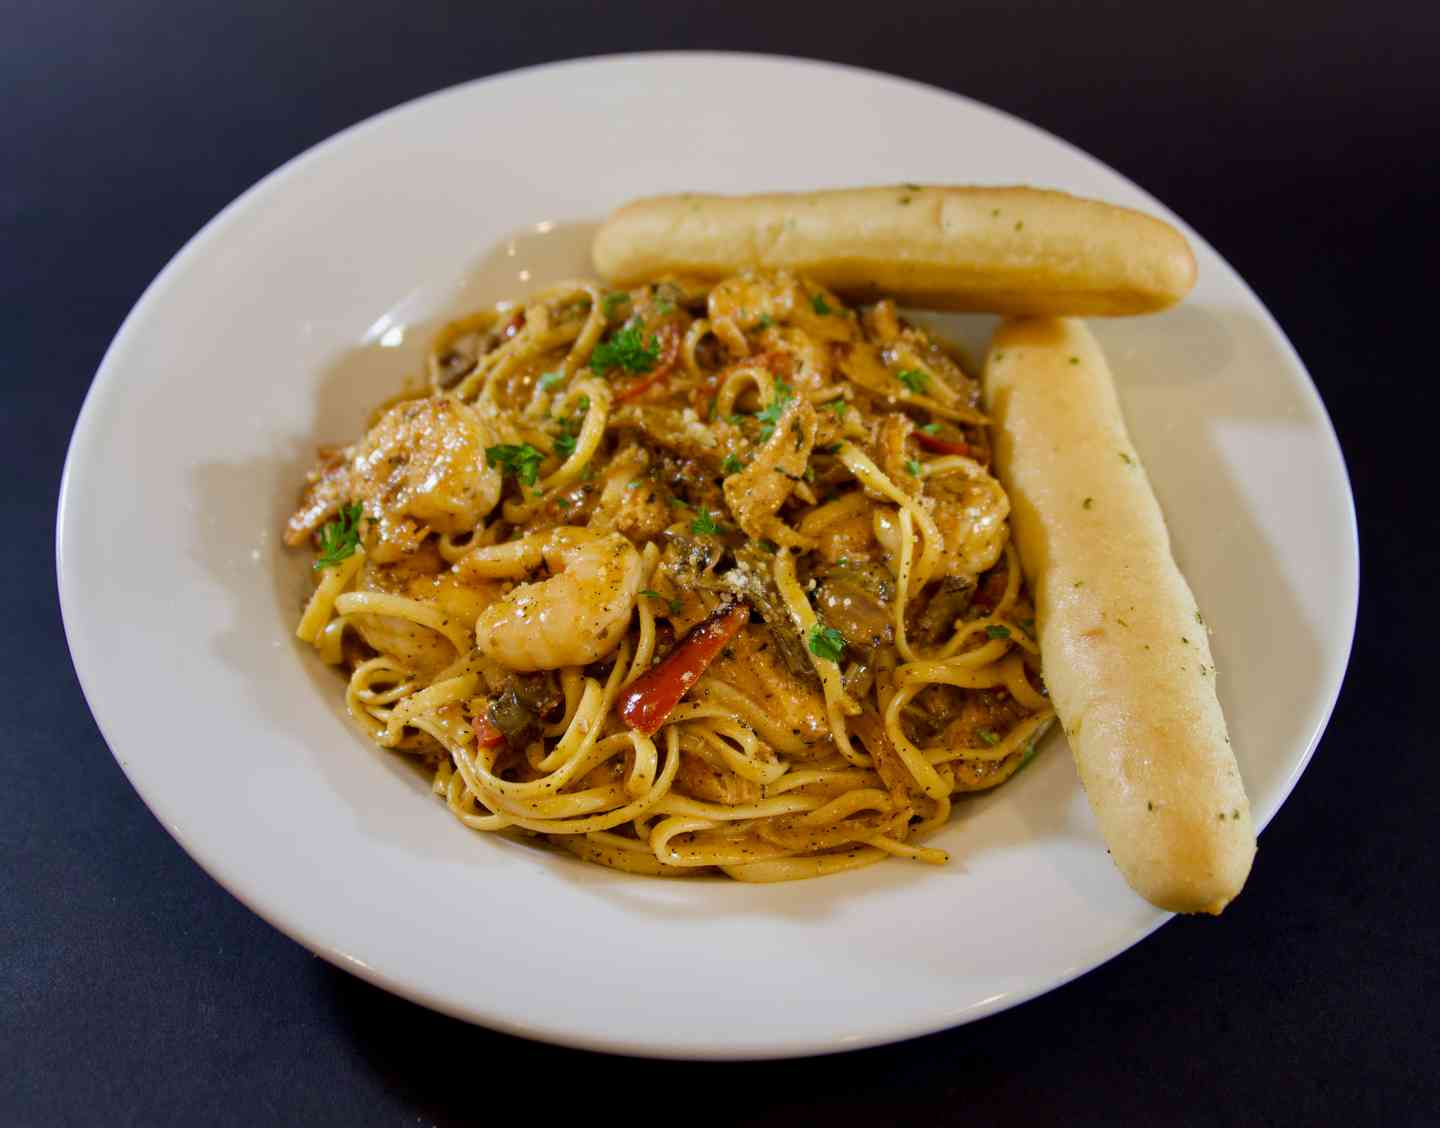 Blackened Chicken & Shrimp Linguine